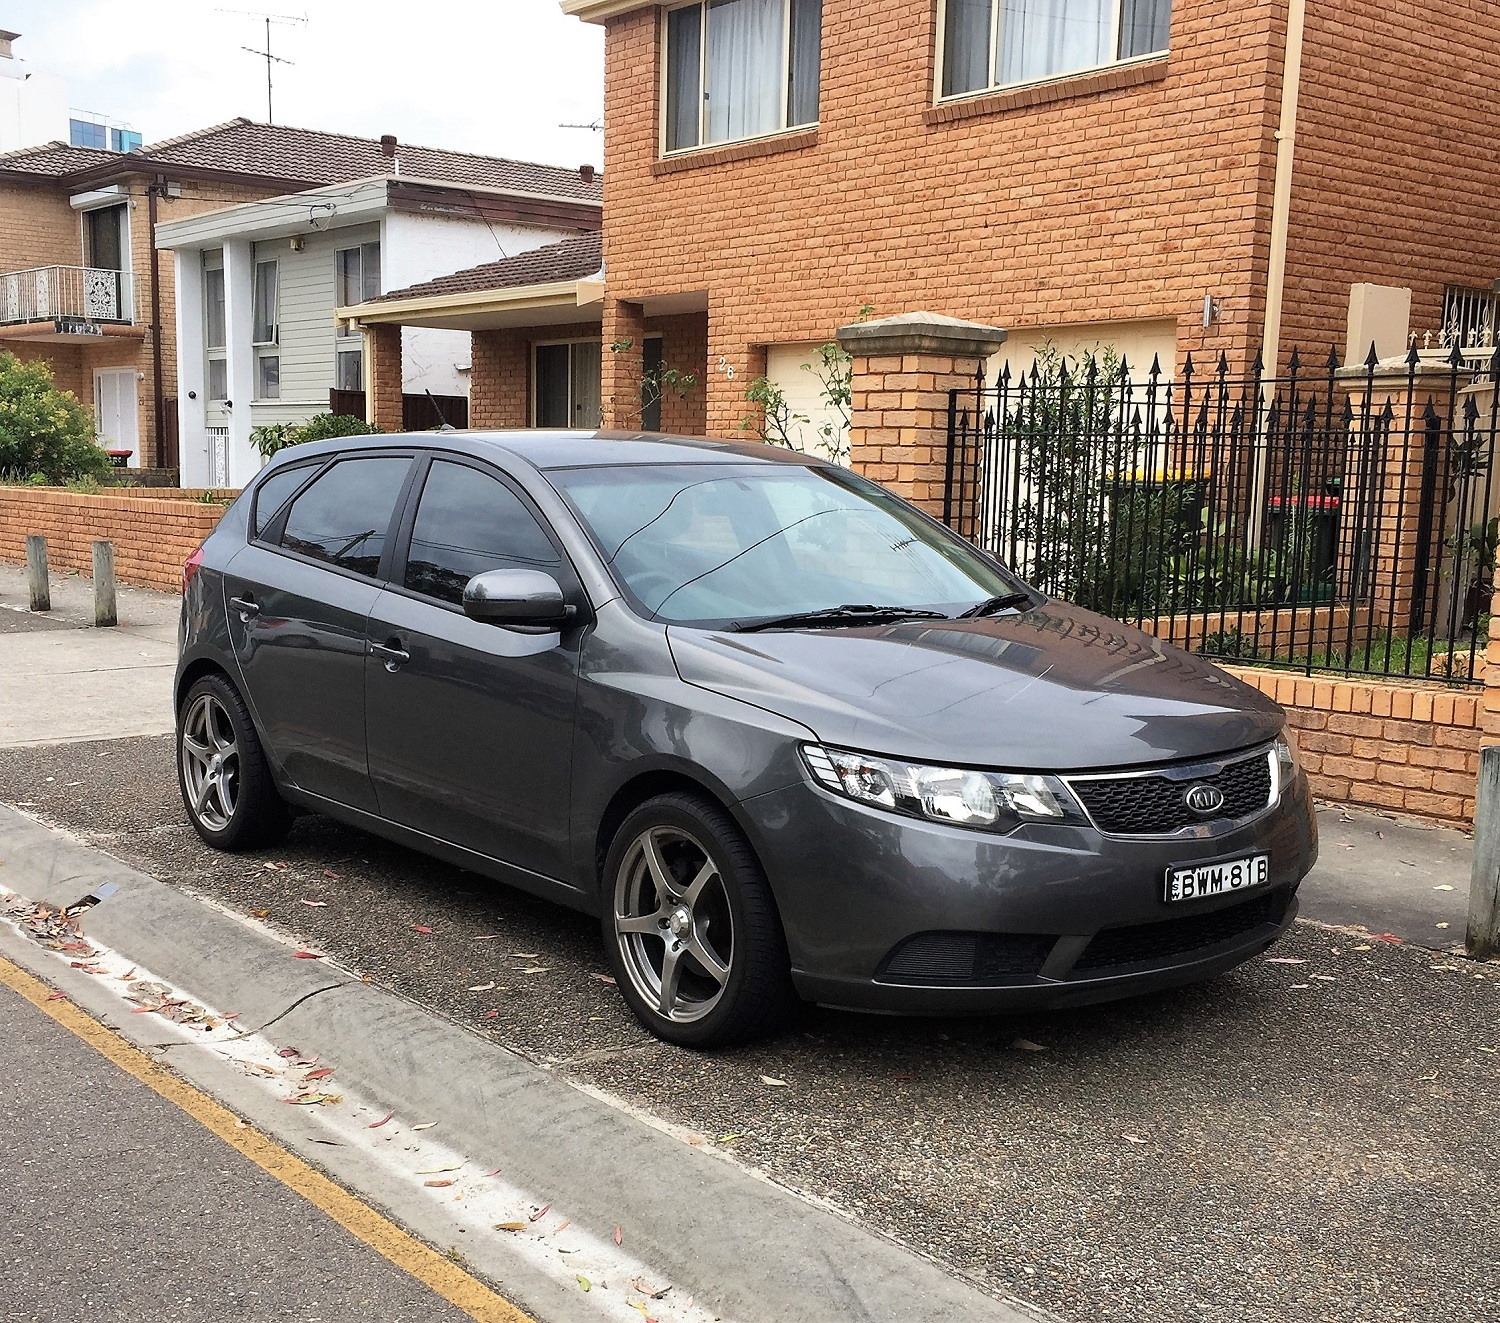 Picture of Nina's 2012 Kia Cerato